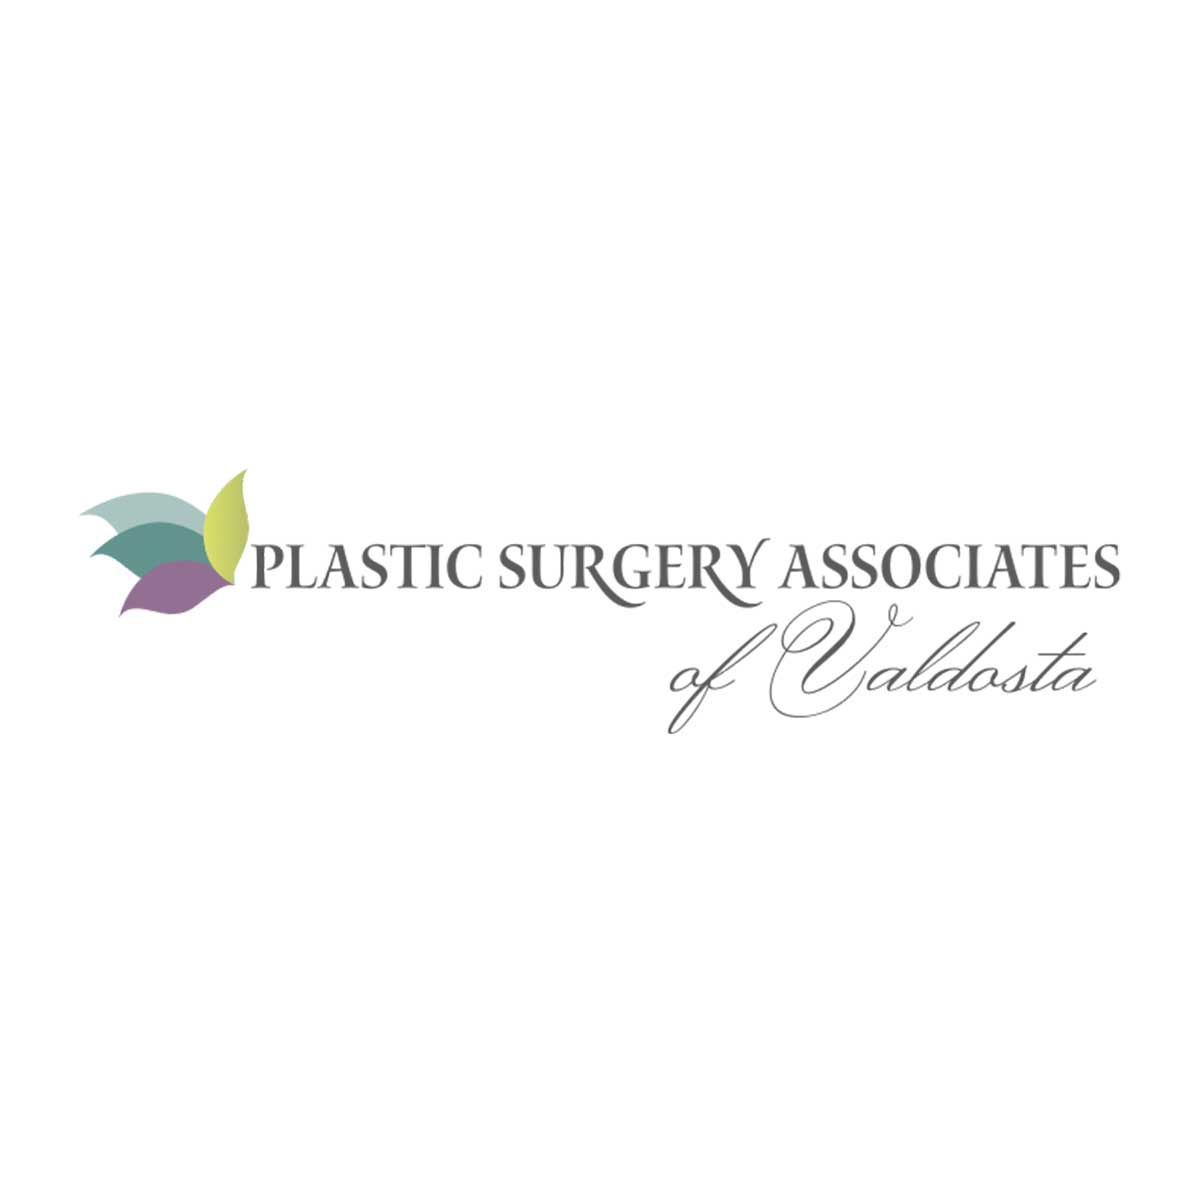 Plastic Surgery Associates of Valdosta is a Certified Military Friendly Business